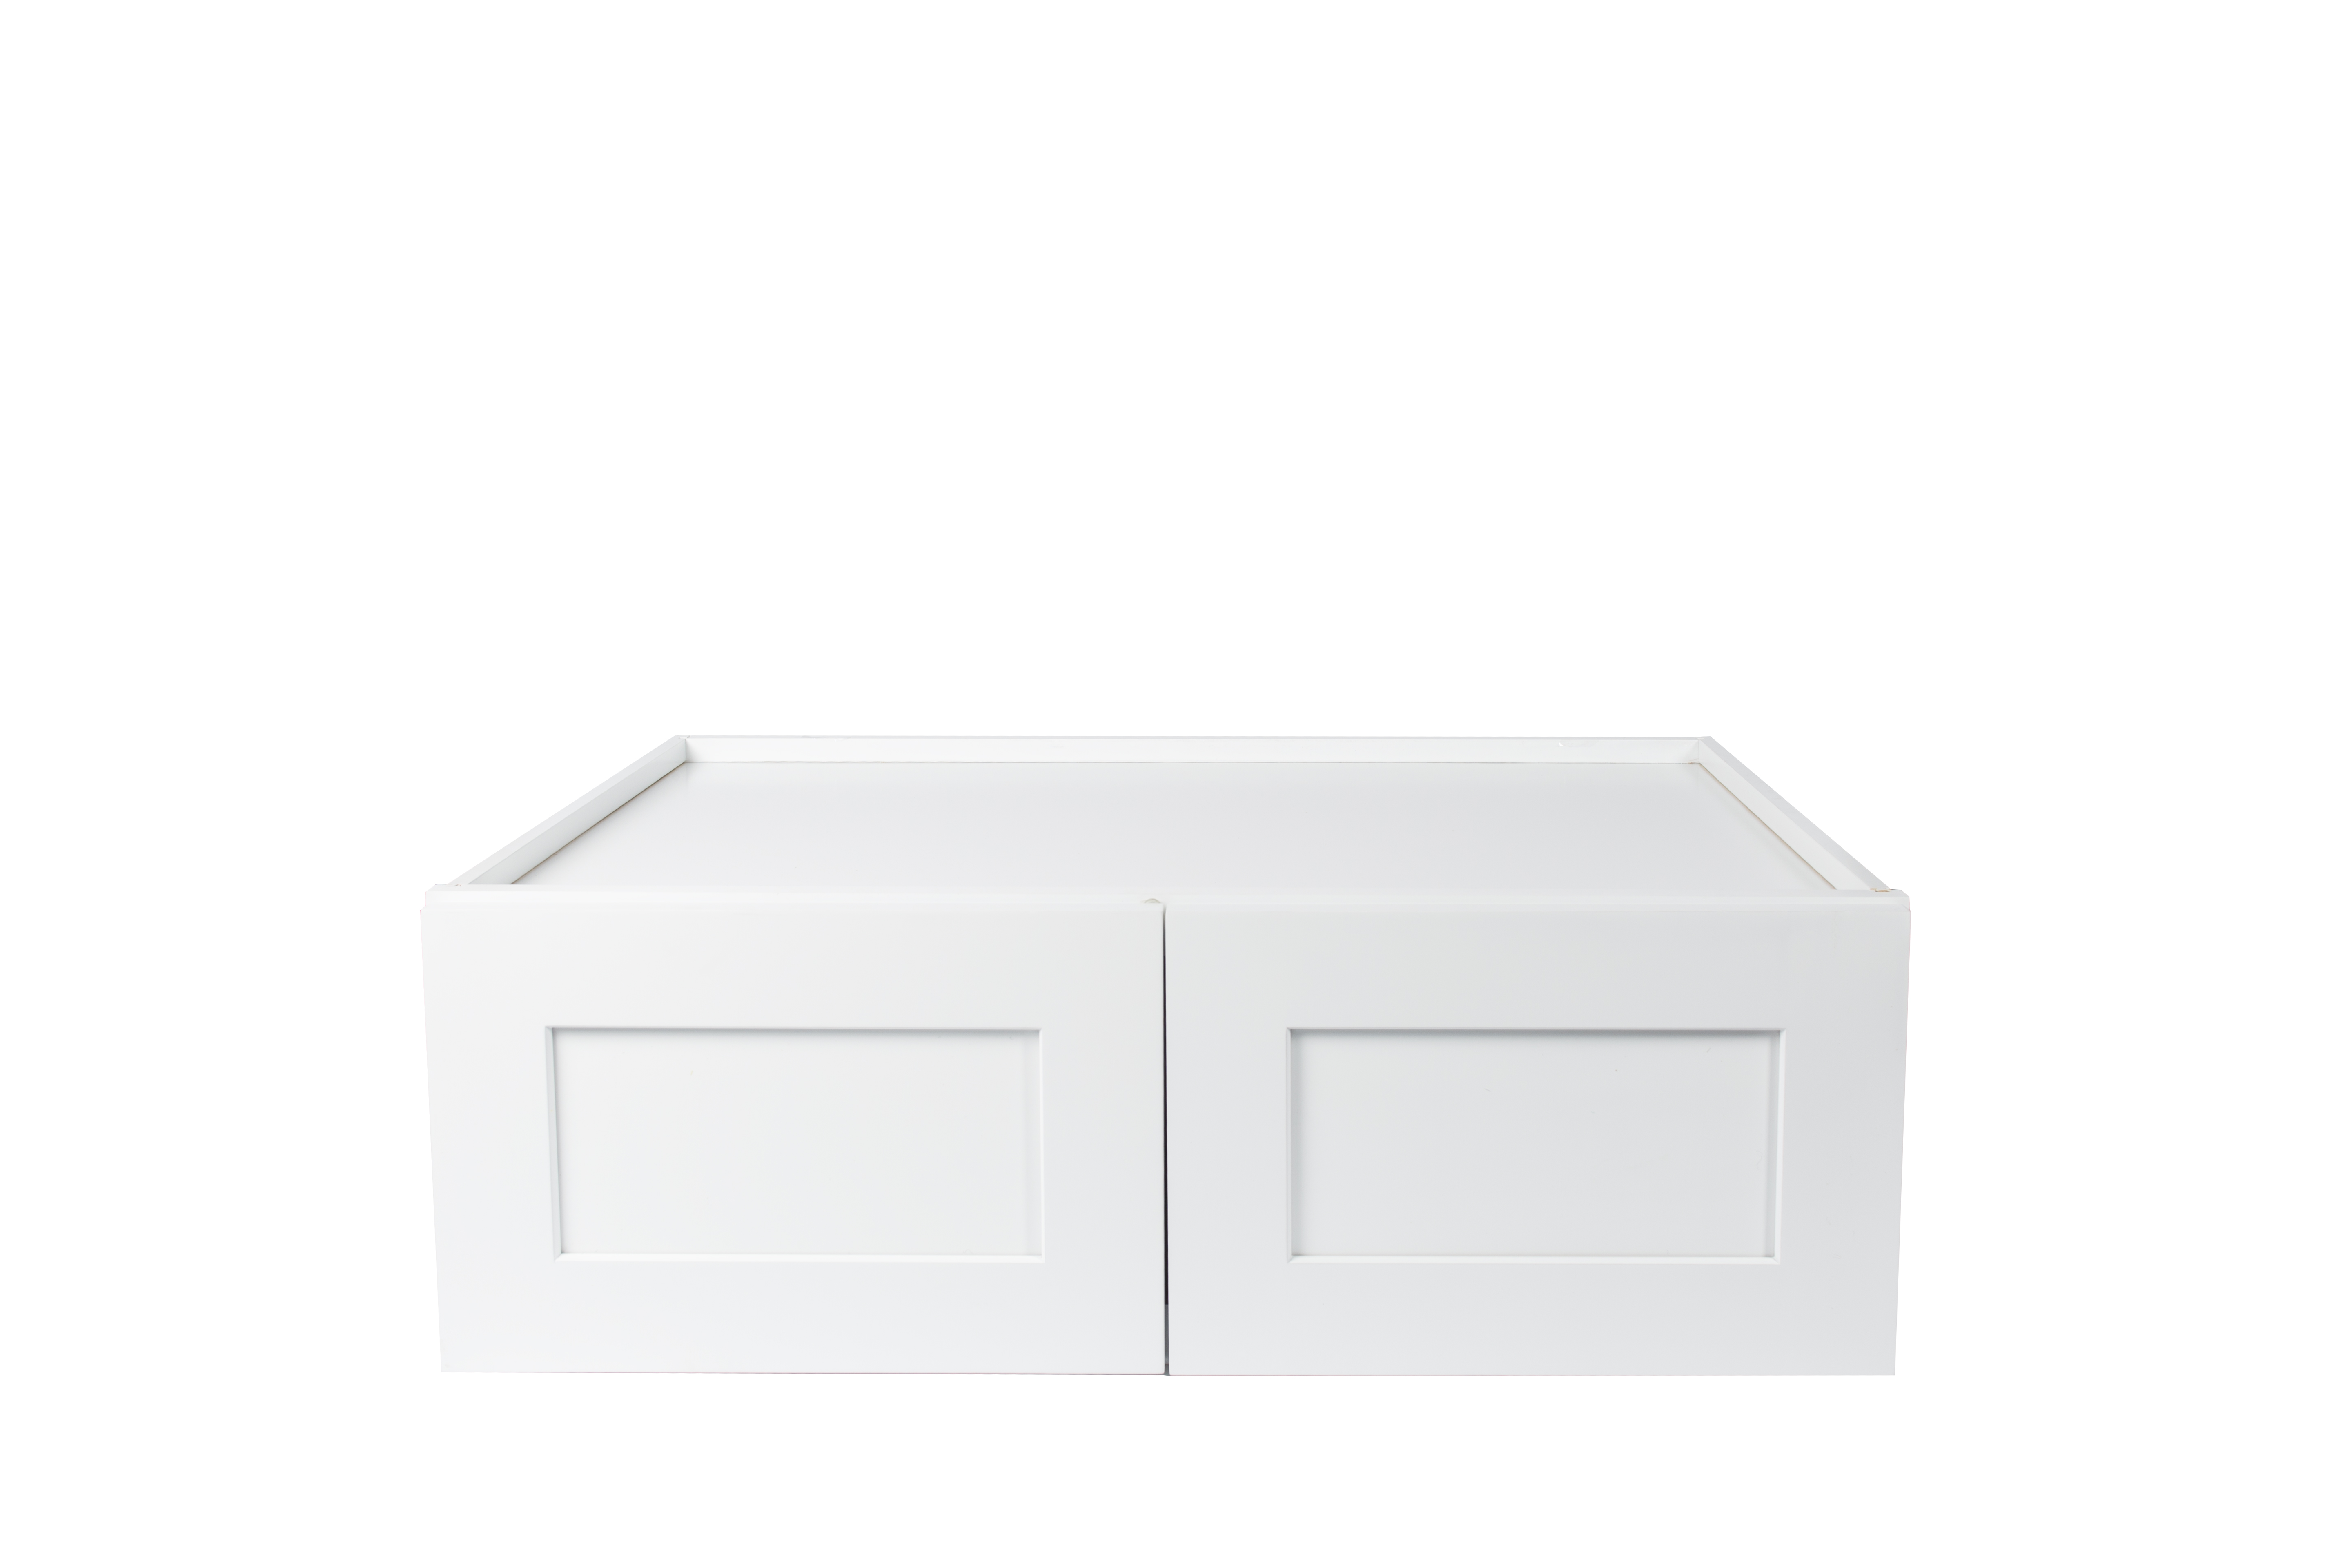 Ready to Assemble 36x15x12 in. Shaker High Double Door Wall Cabinet in White